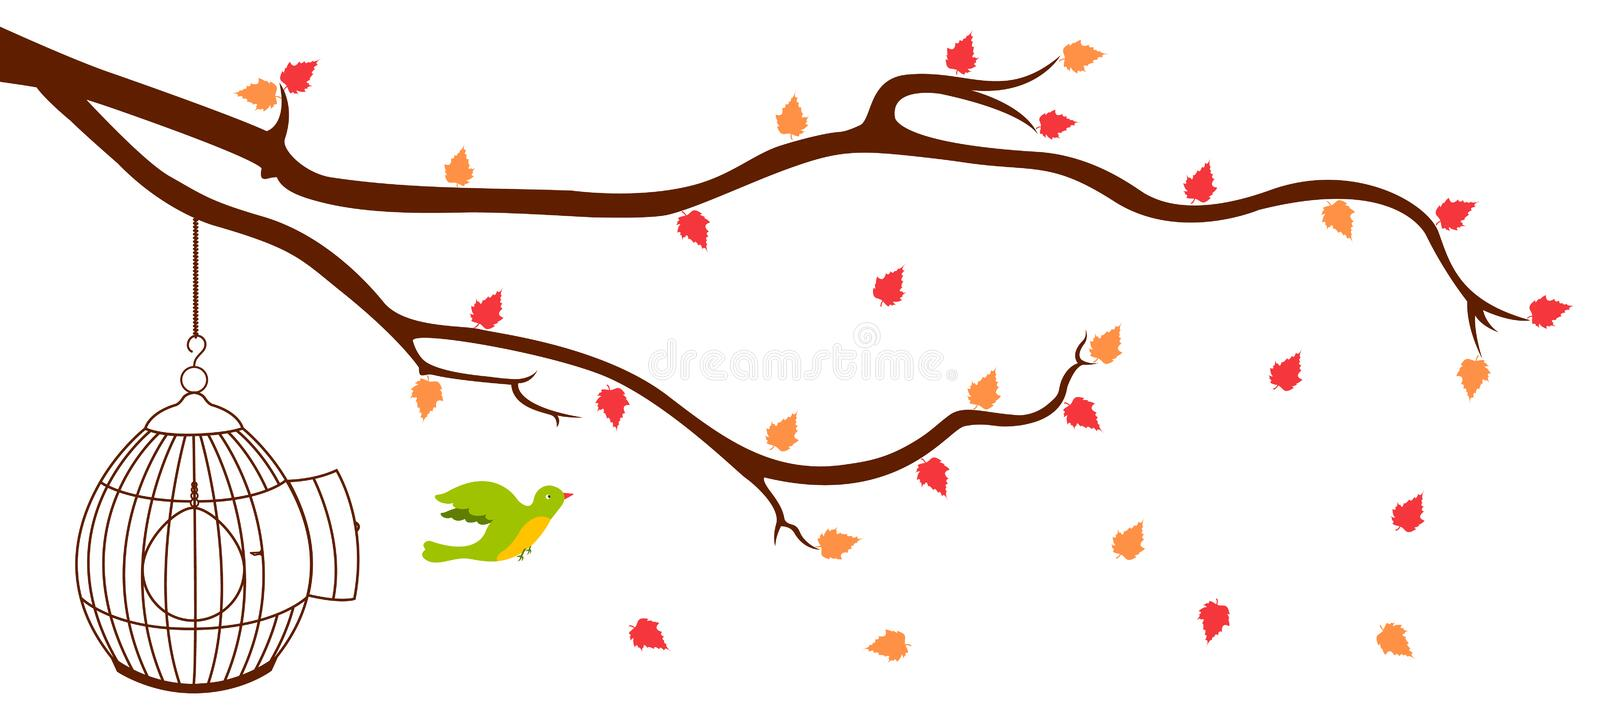 Bird leaving cage from Tree Branch royalty free illustration